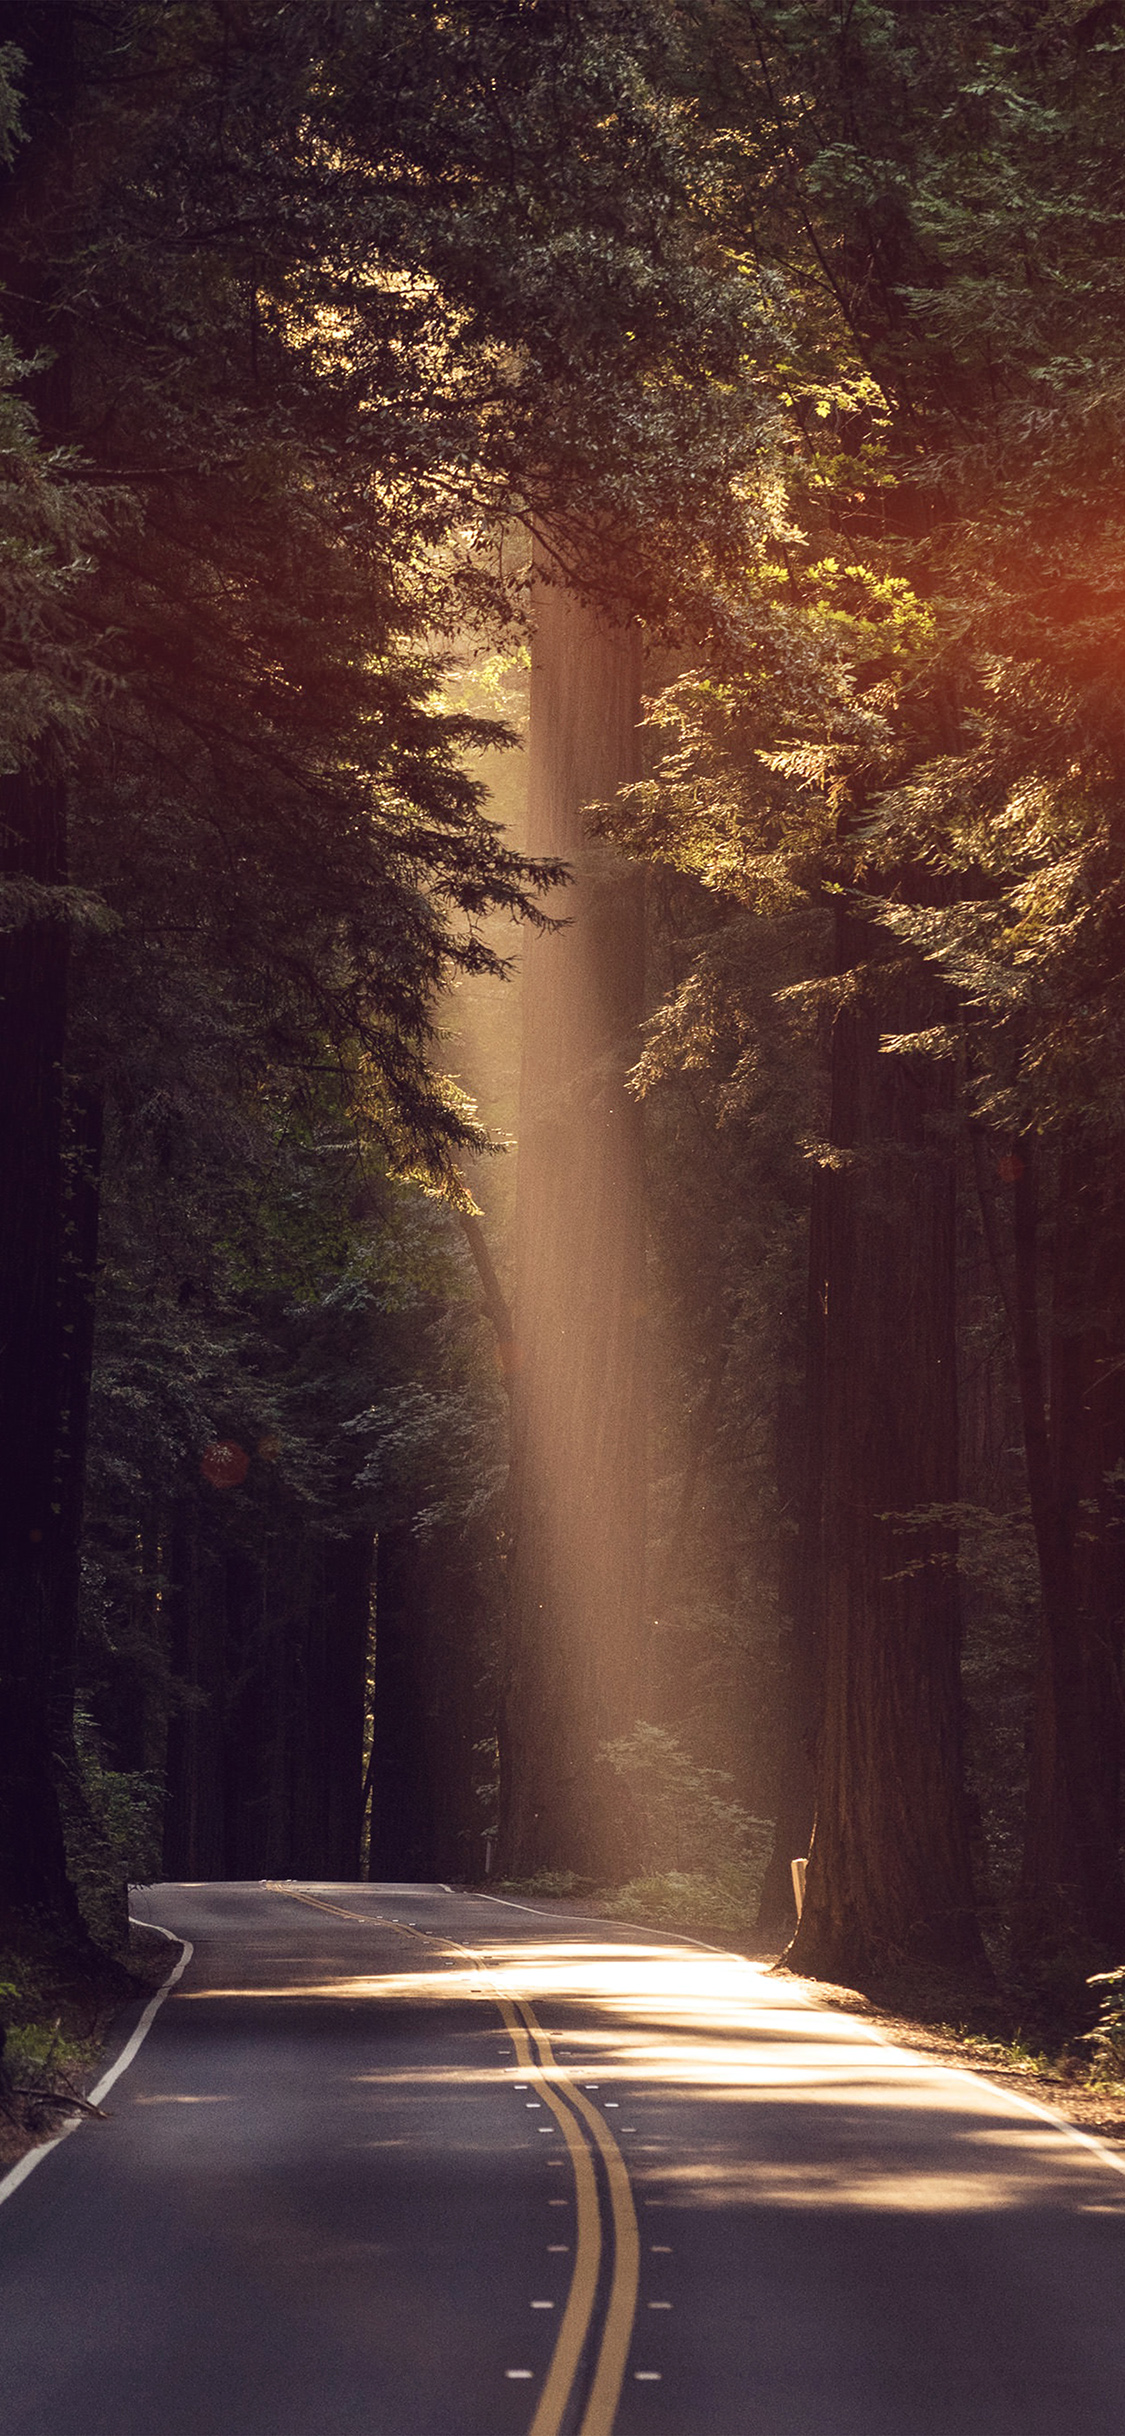 iPhonexpapers.com-Apple-iPhone-wallpaper-nh16-light-road-wood-forest-way-nature-flare